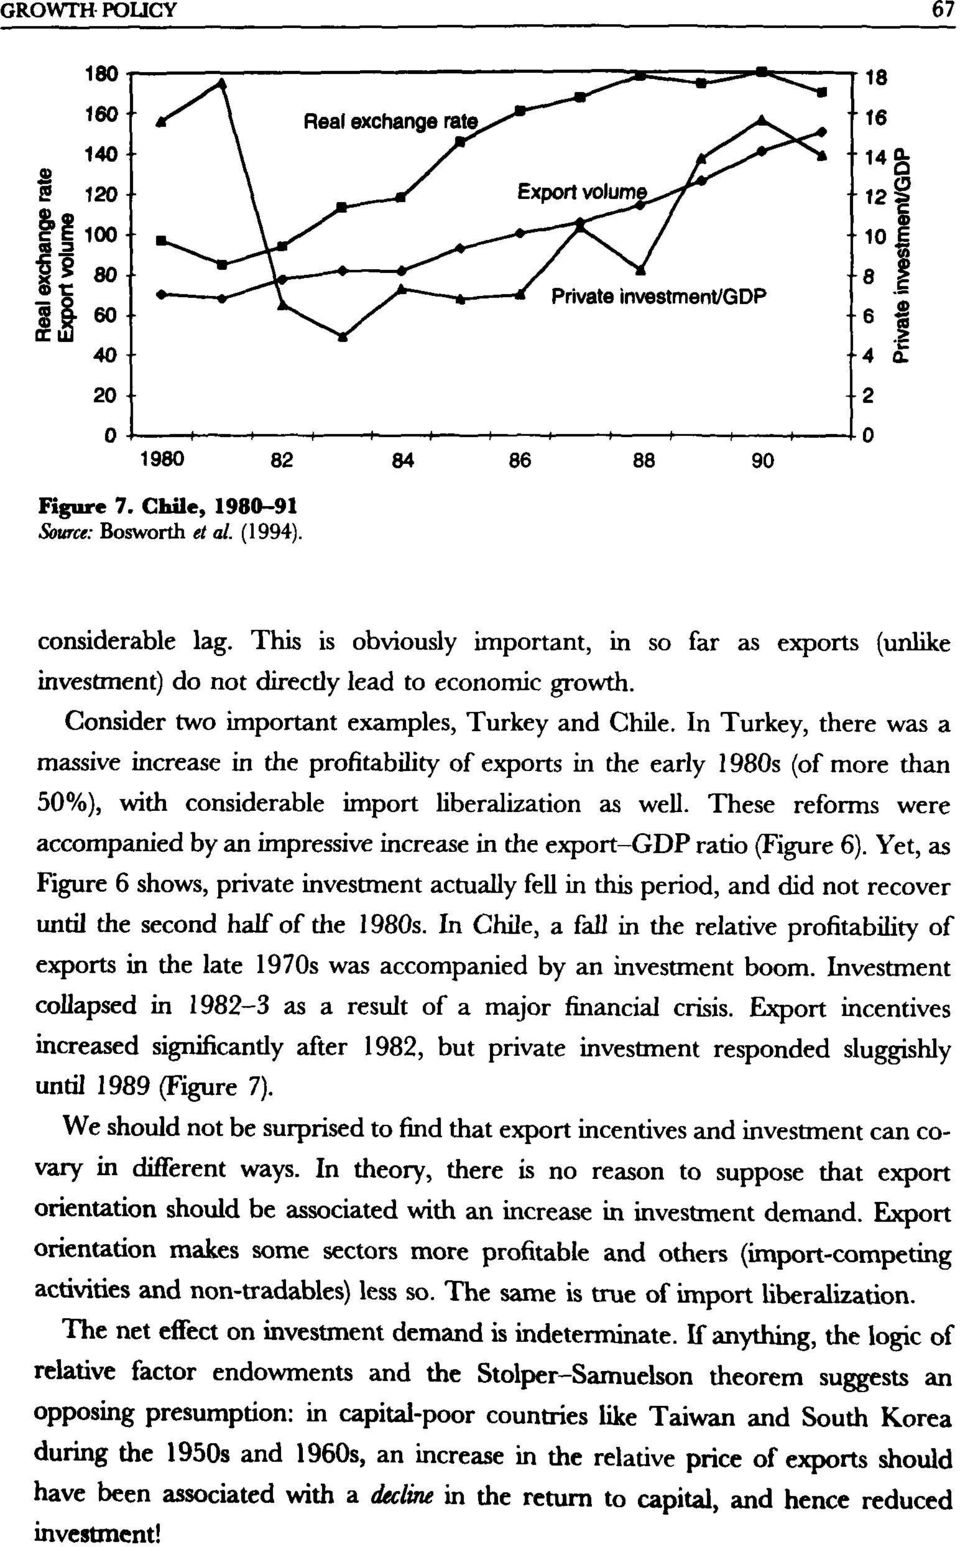 In Turkey, there was a massive increase in the profitability of exports in the early 1980s (of more than 50%), with considerable import liberalization as well.